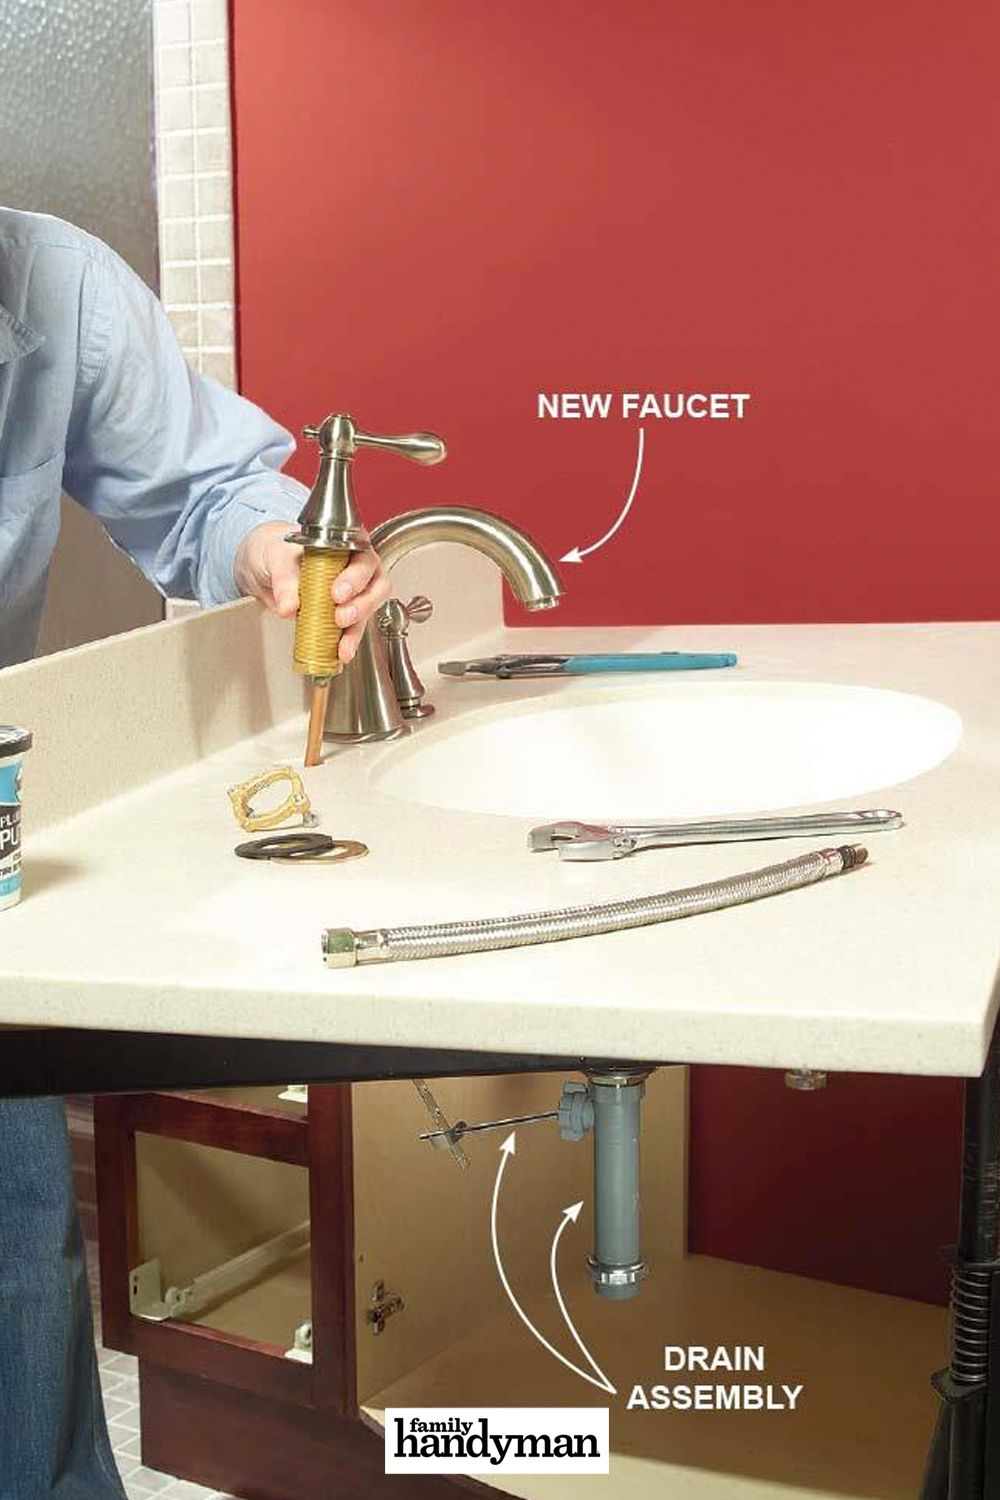 10 Tips For Installing A Faucet The Easy Way Faucet Faucet